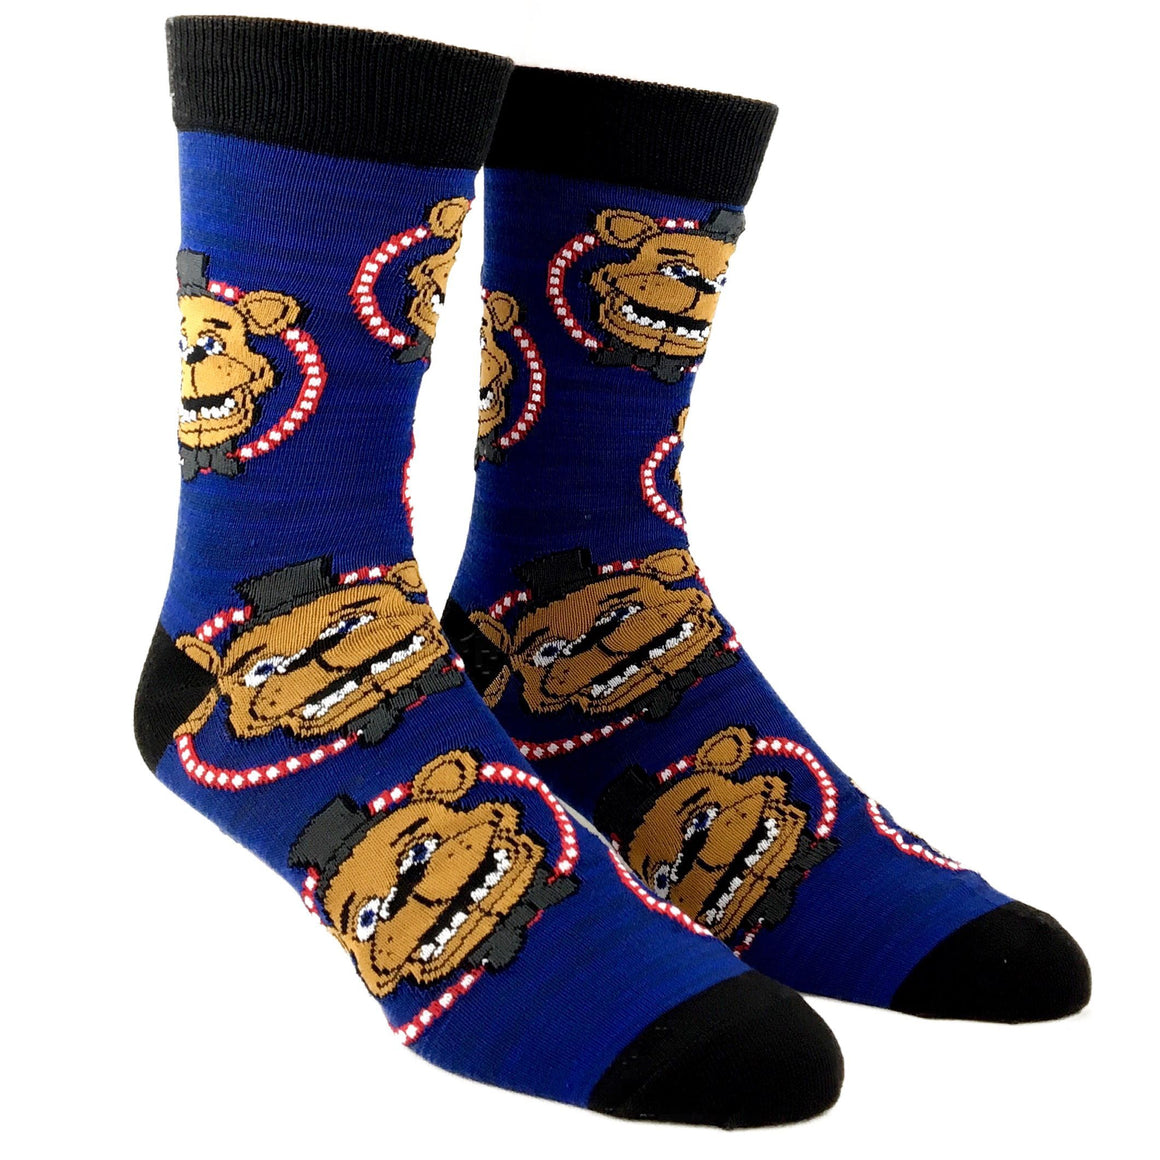 2 Pair Pack Five Nights at Freddy's Socks - The Sock Spot